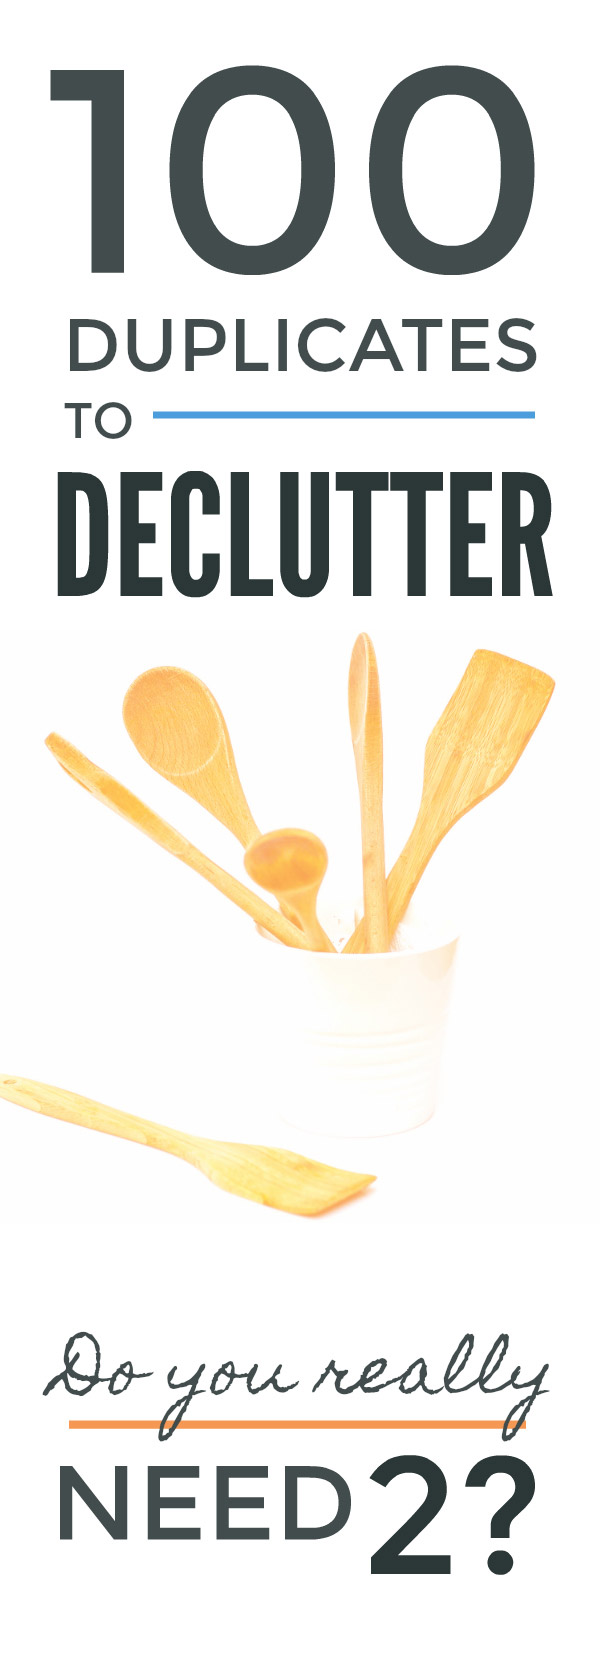 Use this big declutter list to clear easily all those things you're hoarding two or even ten of   #clutter #simple #organization #minimalism